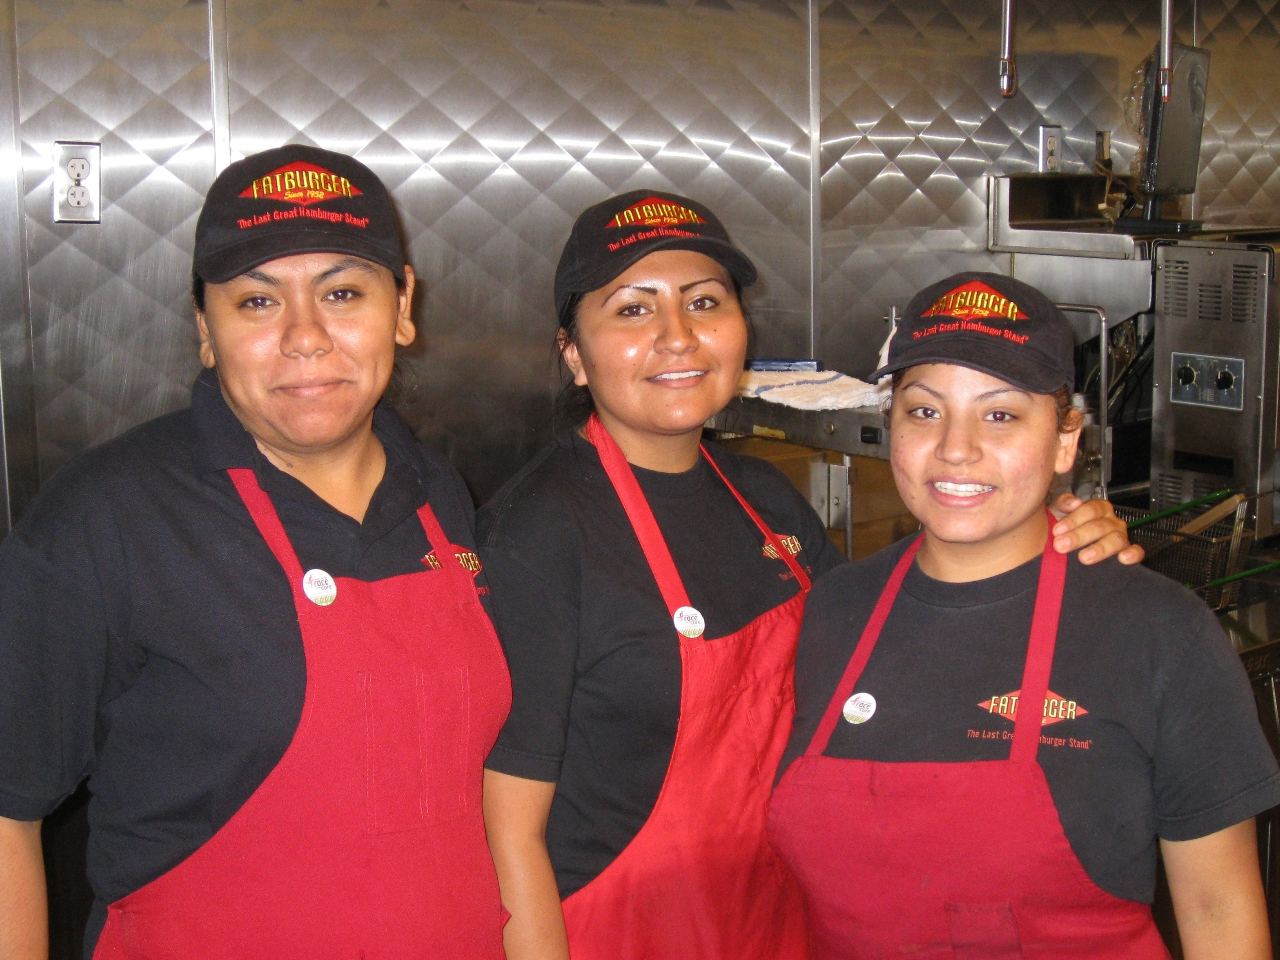 Yasmin, Laura and Amada, the smart women of Fatburger